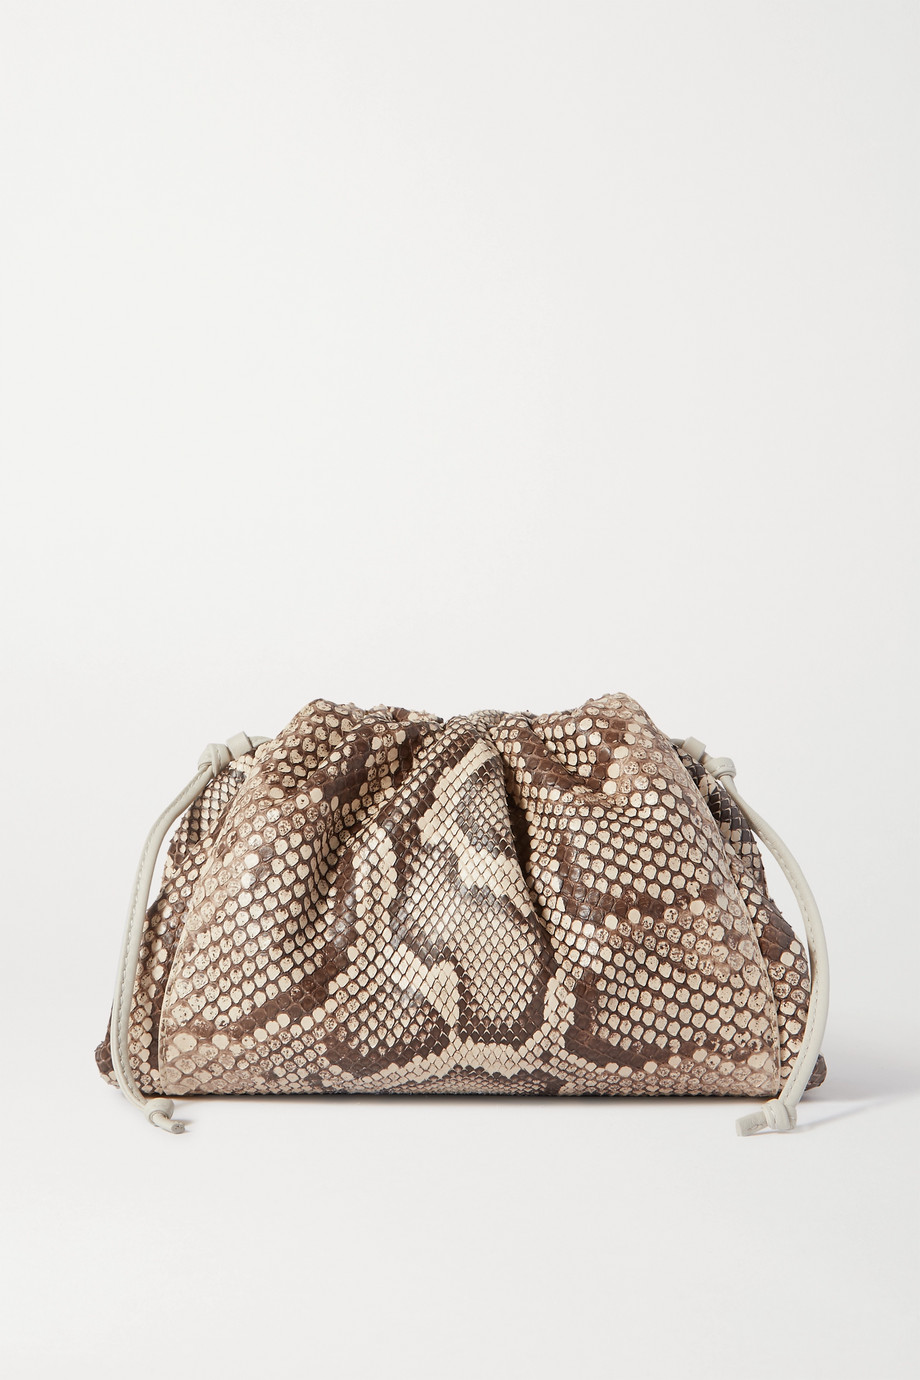 Bottega Veneta The Pouch small leather-trimmed python clutch